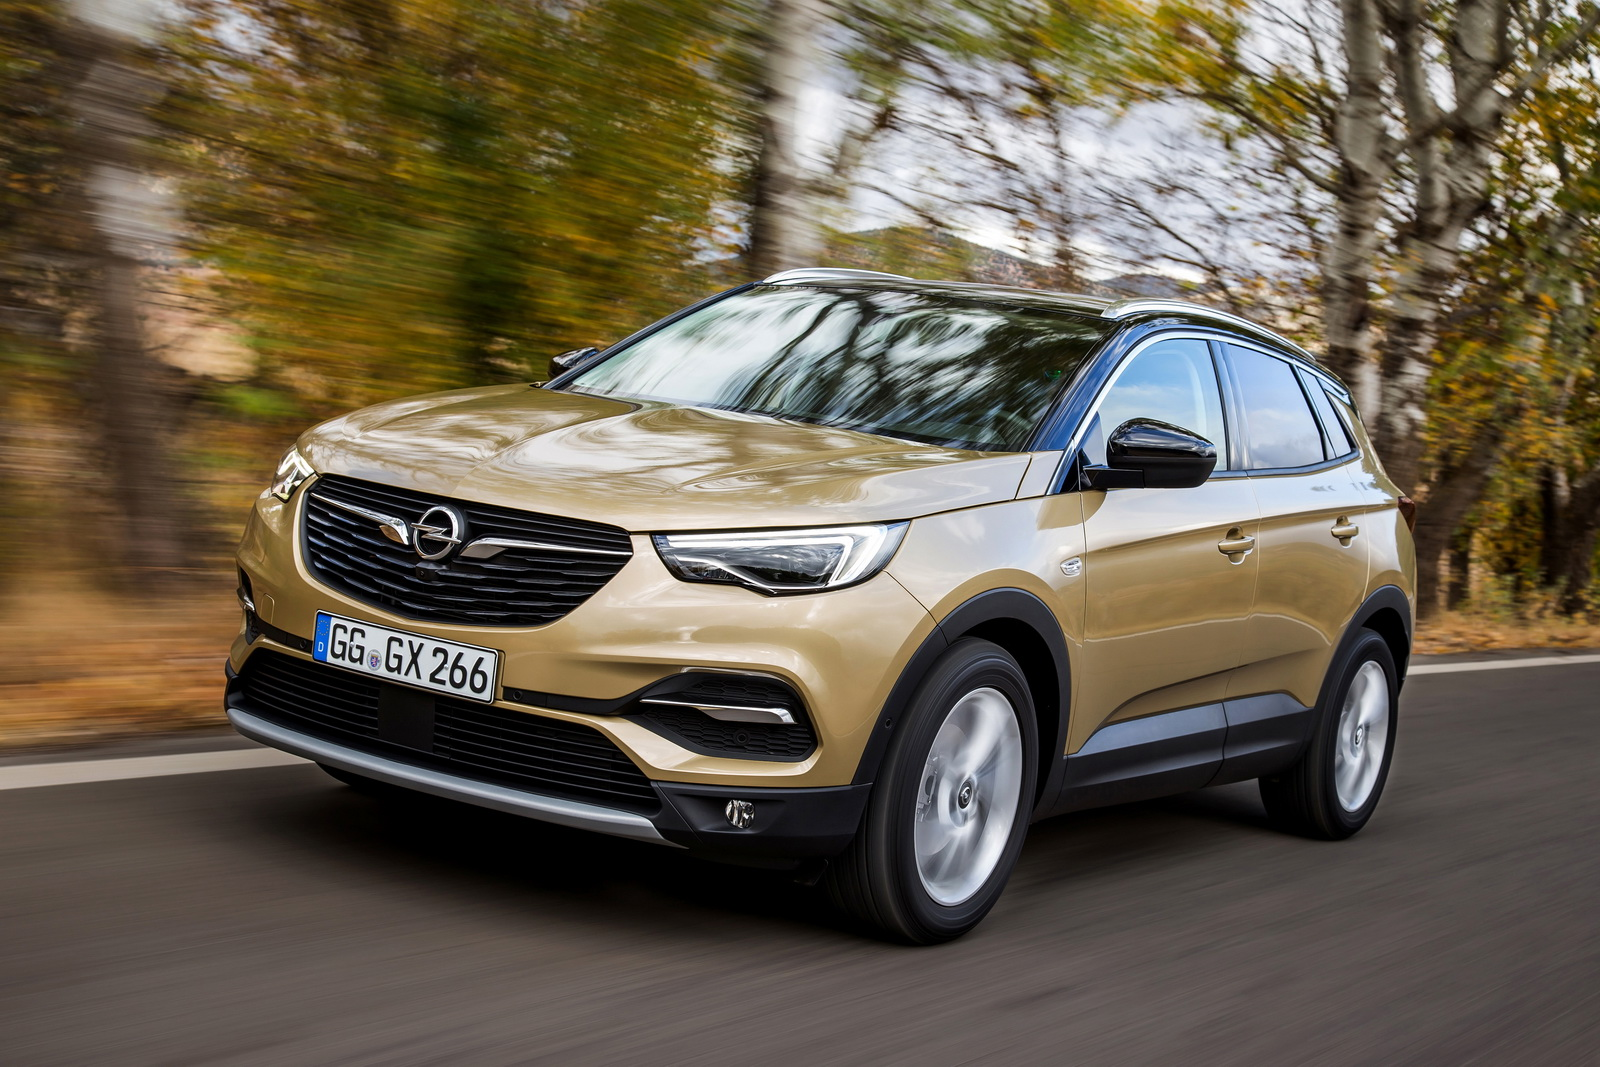 Top diesel for Opel Grandland X: The new SUV is now available with the 130 kW/177 hp 2.0-litre diesel that also produces 400 Nm maximum torque.